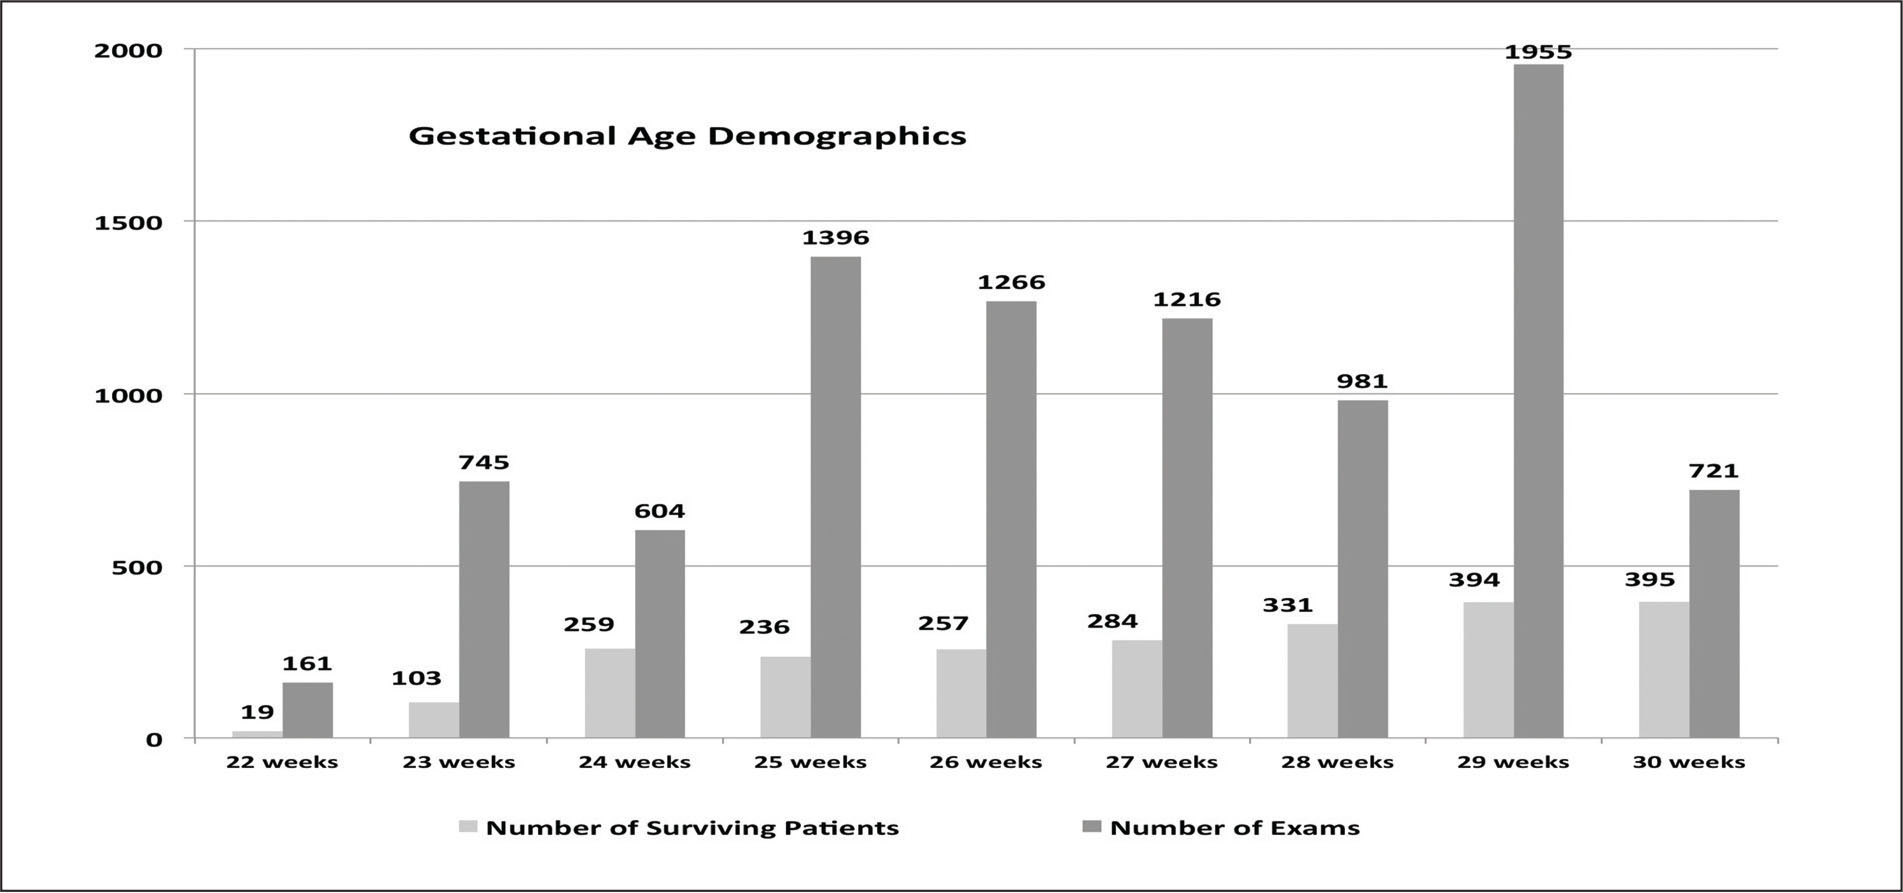 Number of patients and examinations at each gestational age.